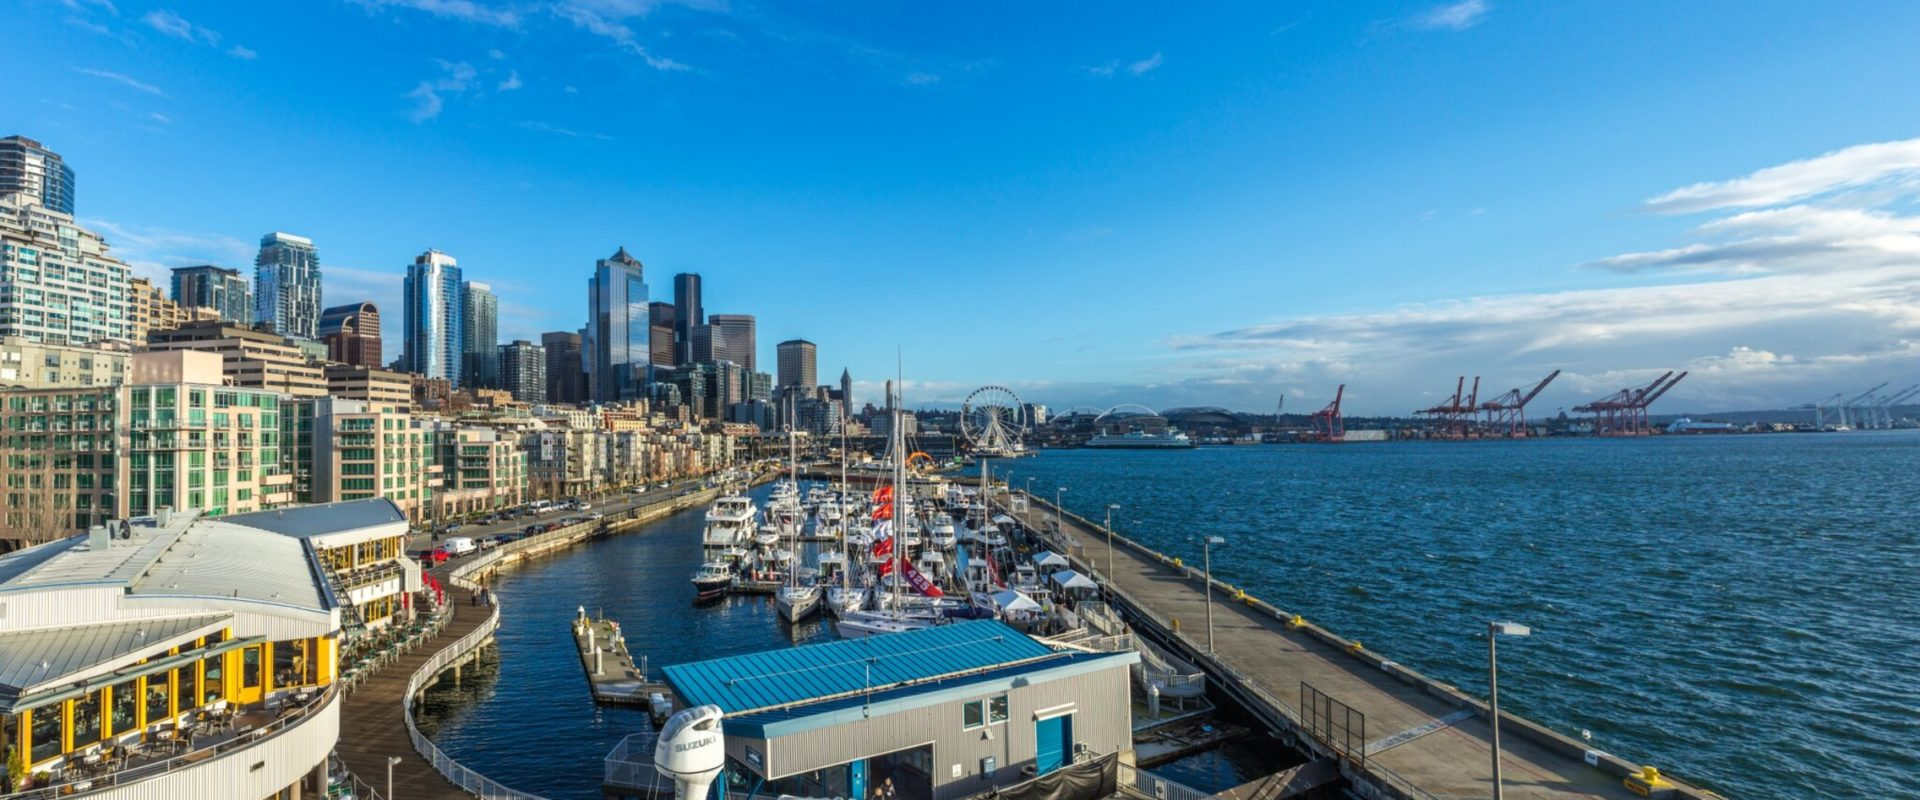 Outdoors Shot of Seattle Pier and Seattle Boat Show